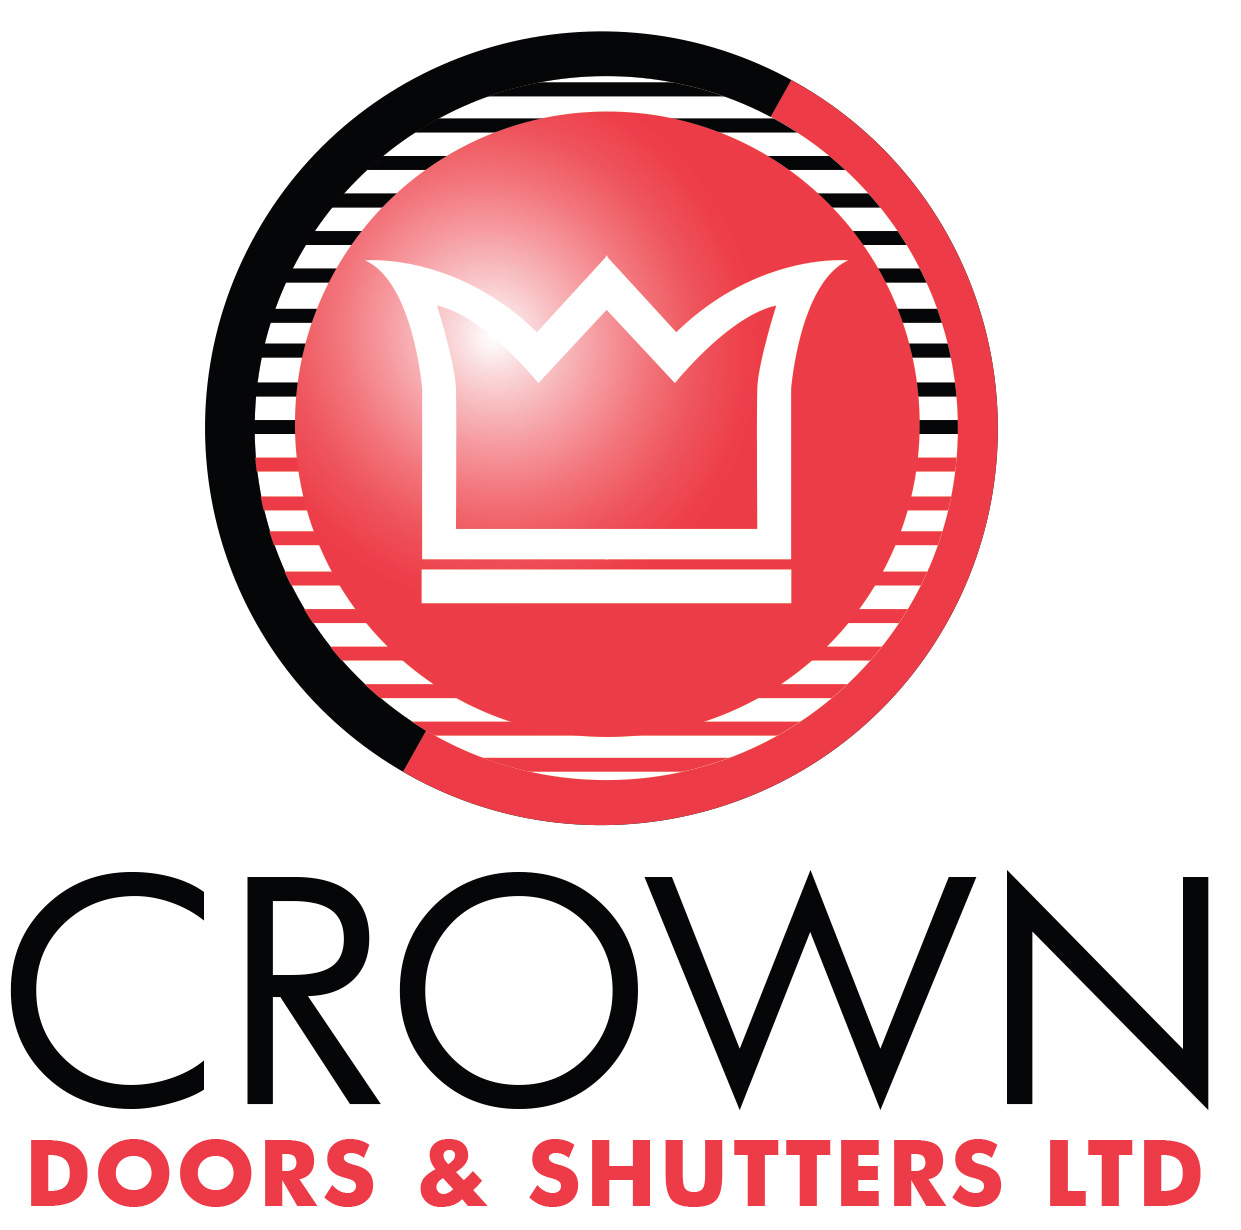 Crown Doors and Shutters